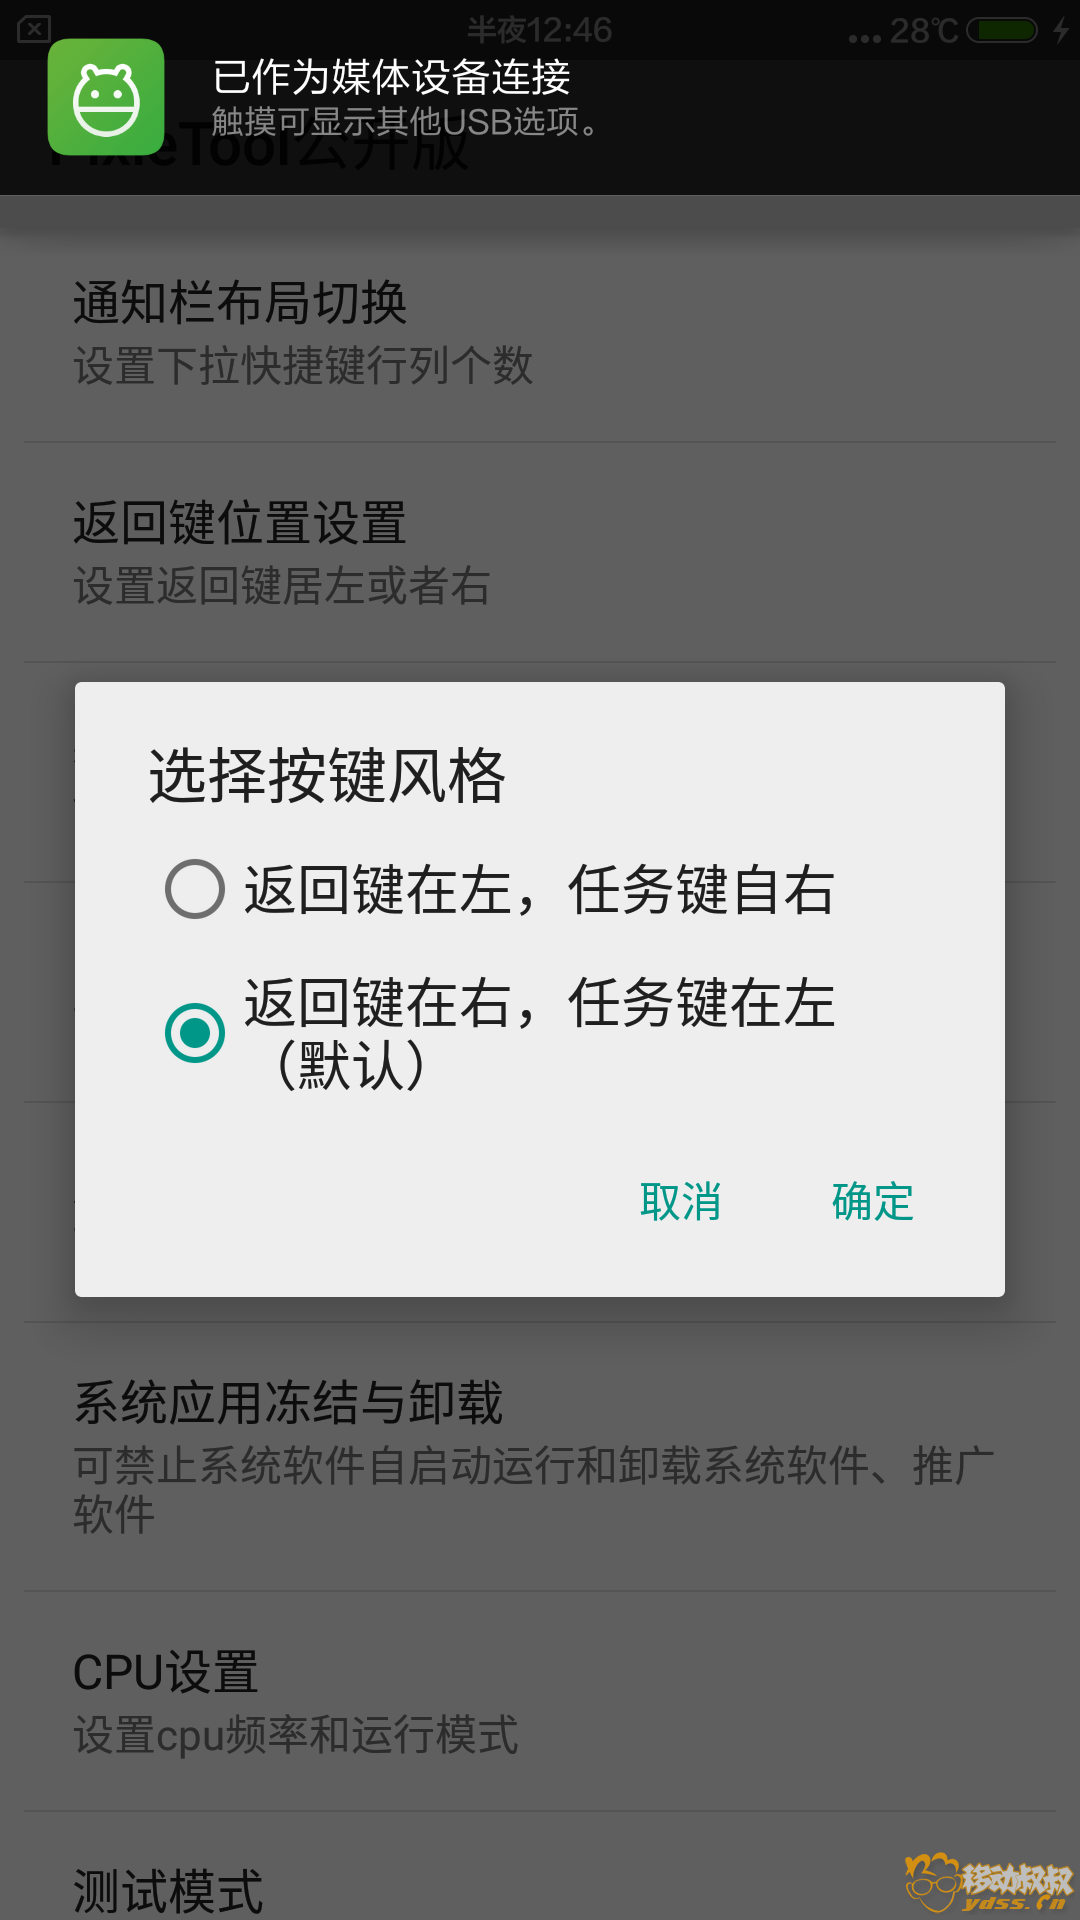 Screenshot_com.example.advsettings_2015-01-01-00-46-13.png